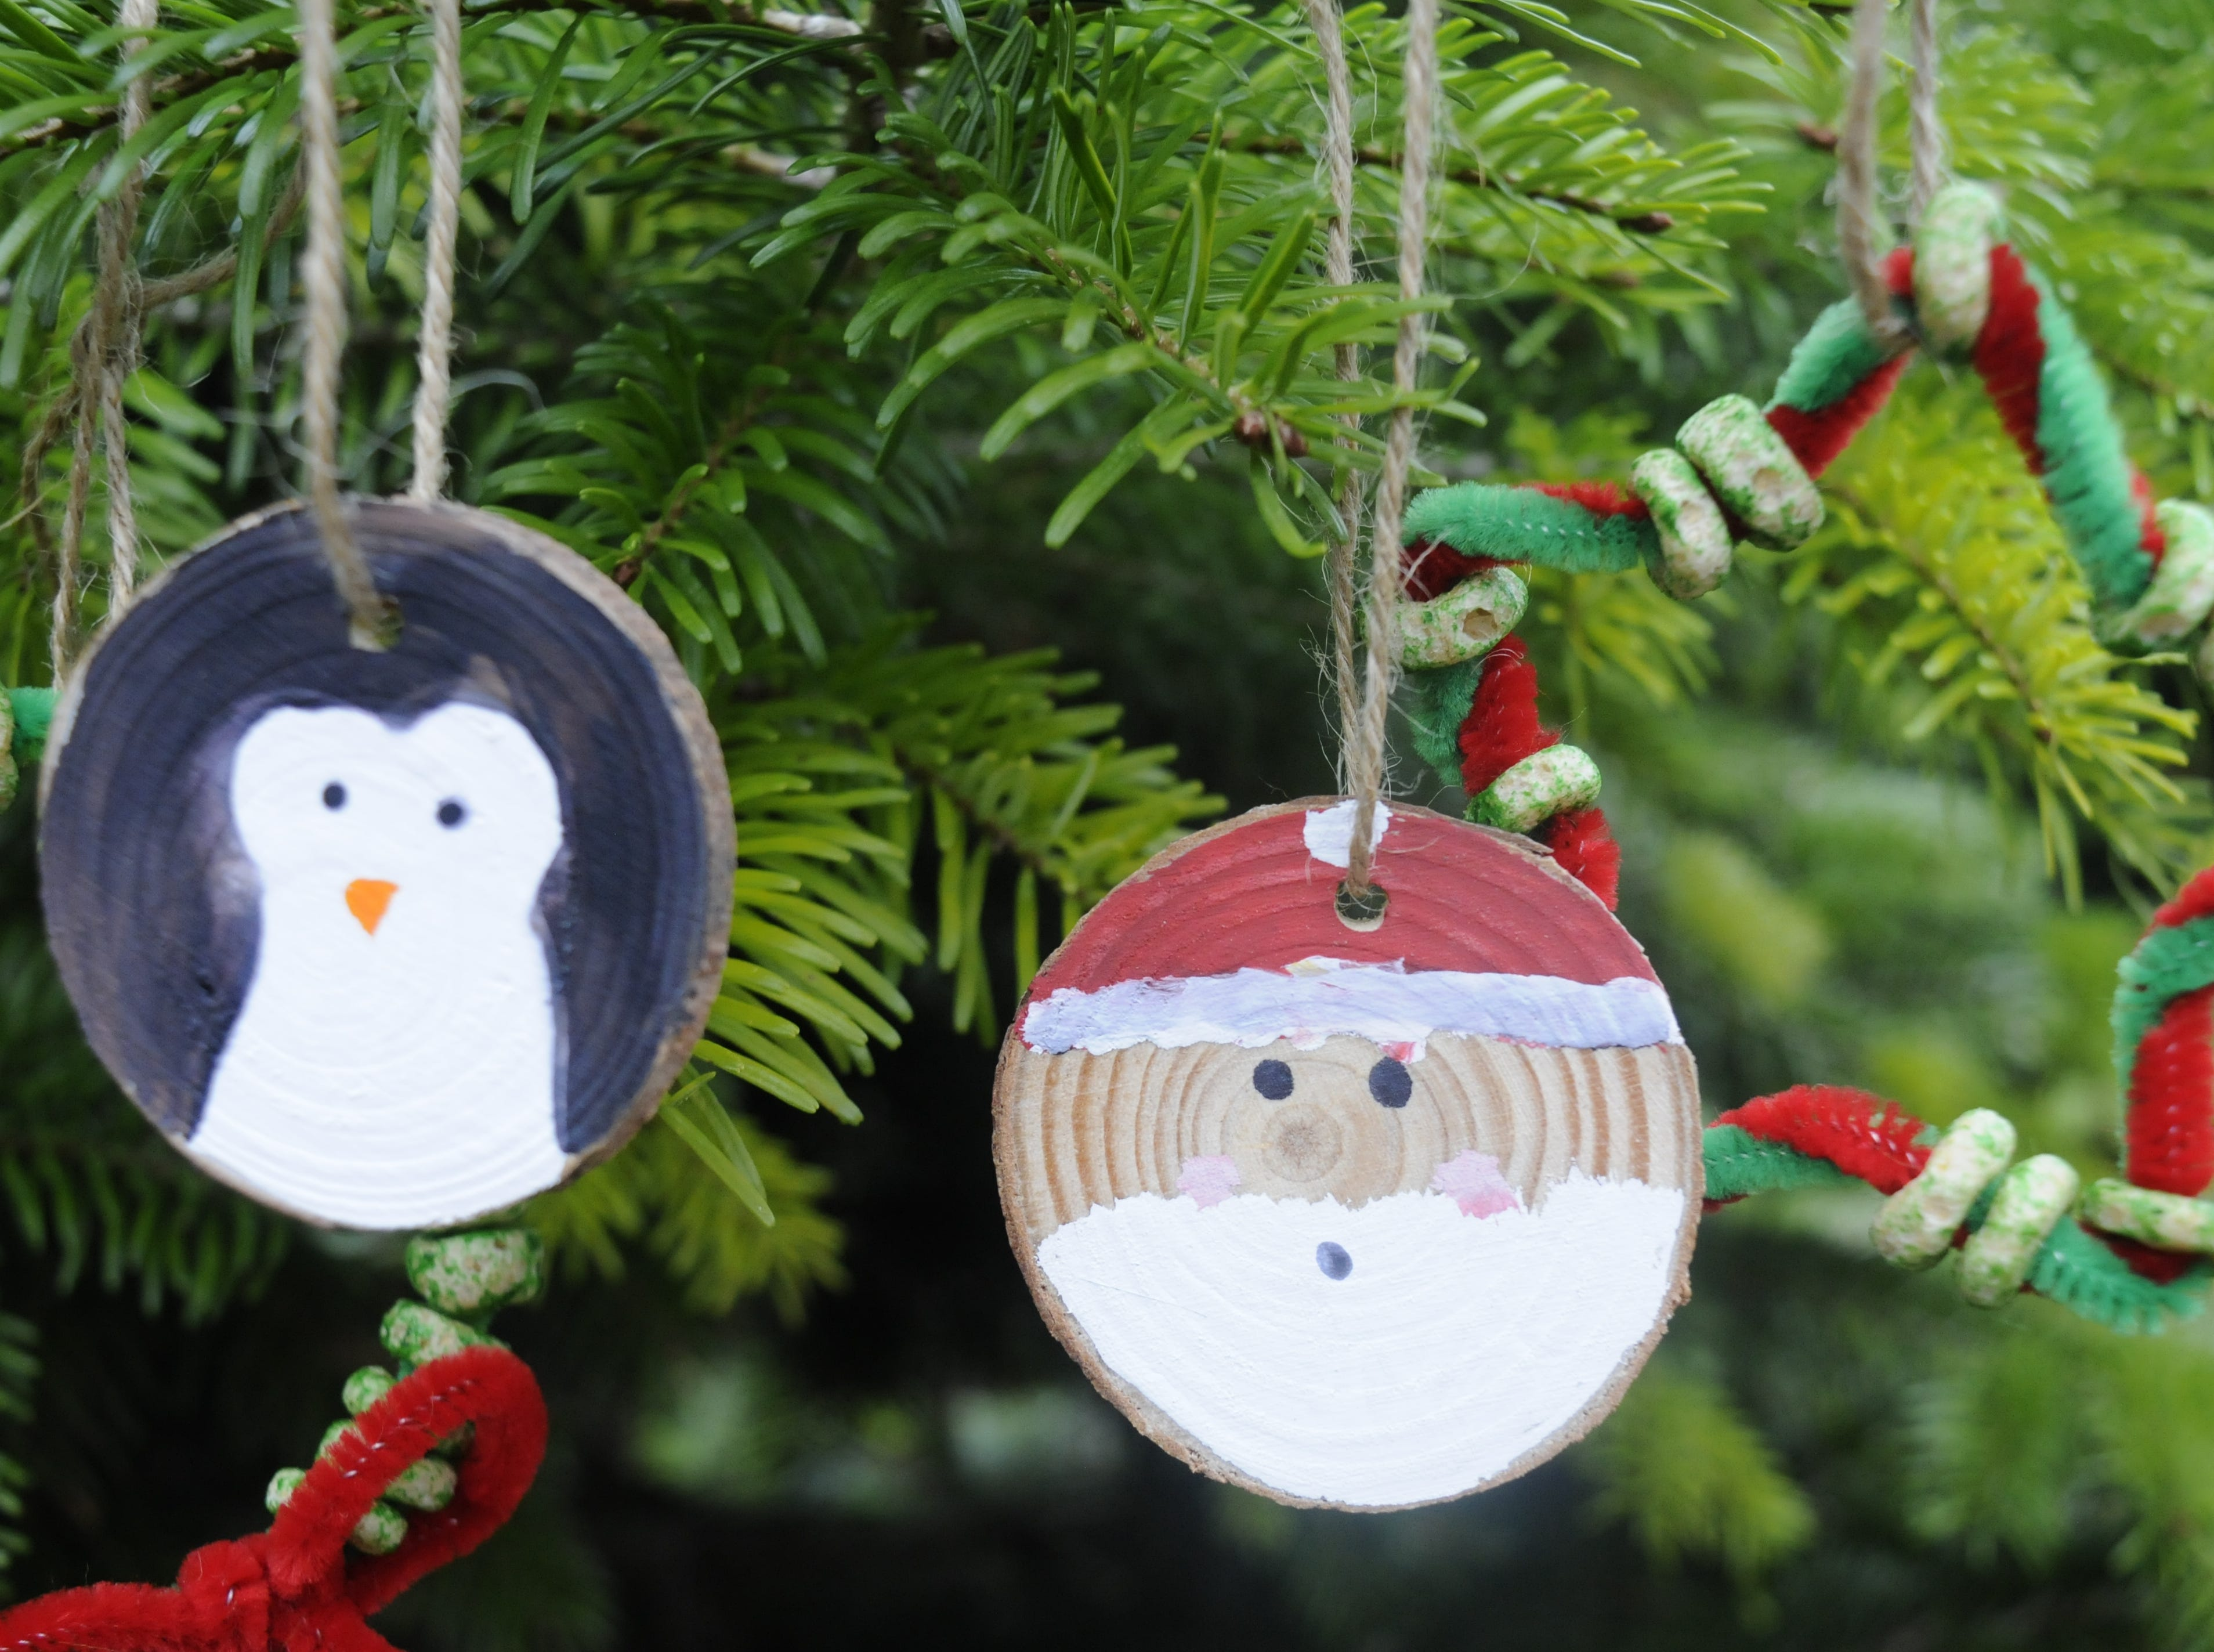 Adding to the holiday spirit will be a display of evergreen trees decorated with ornaments made by local elementary school students.  Participating schools include:  •         Hershey Elementary School, •         Milton Hershey School,  •         St. Joan of Arc and •         The Vista School.